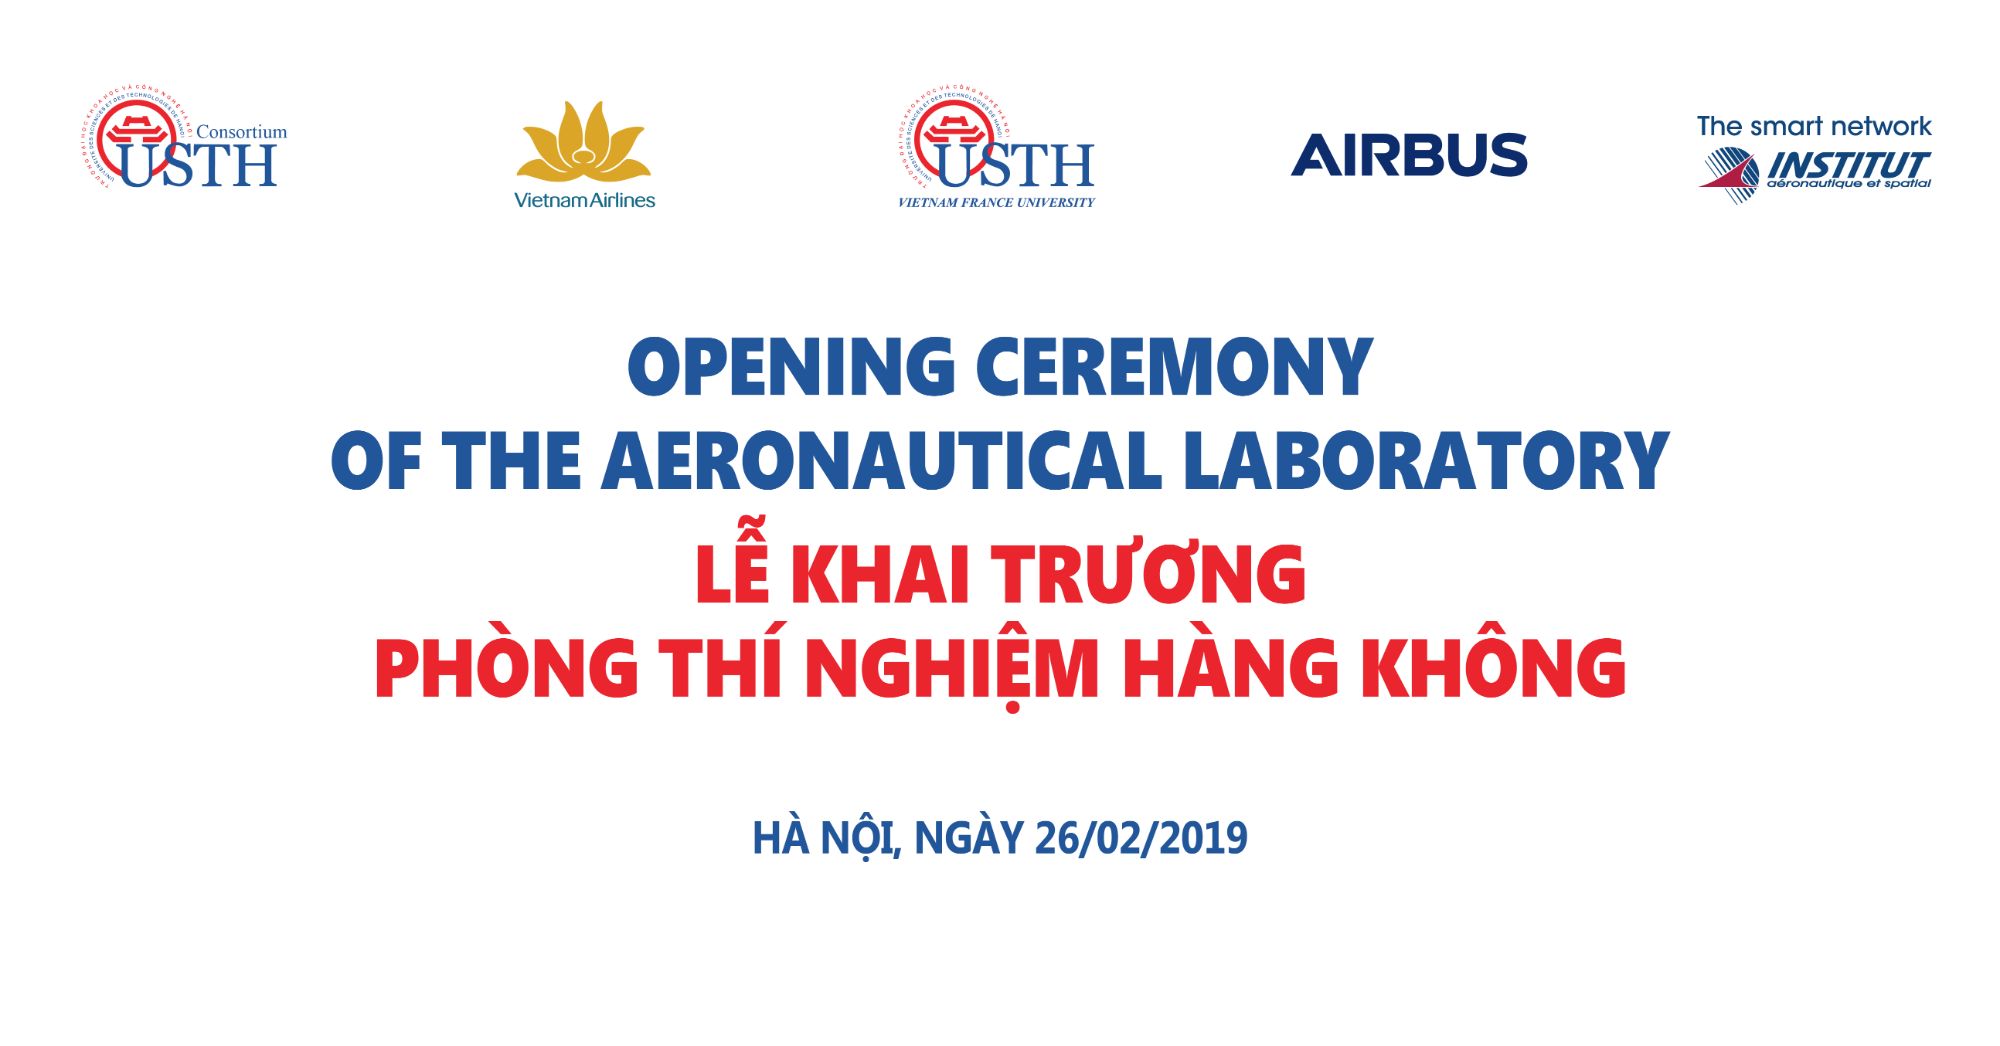 Opening Ceremony of the Aeronatical Laboratory USTH